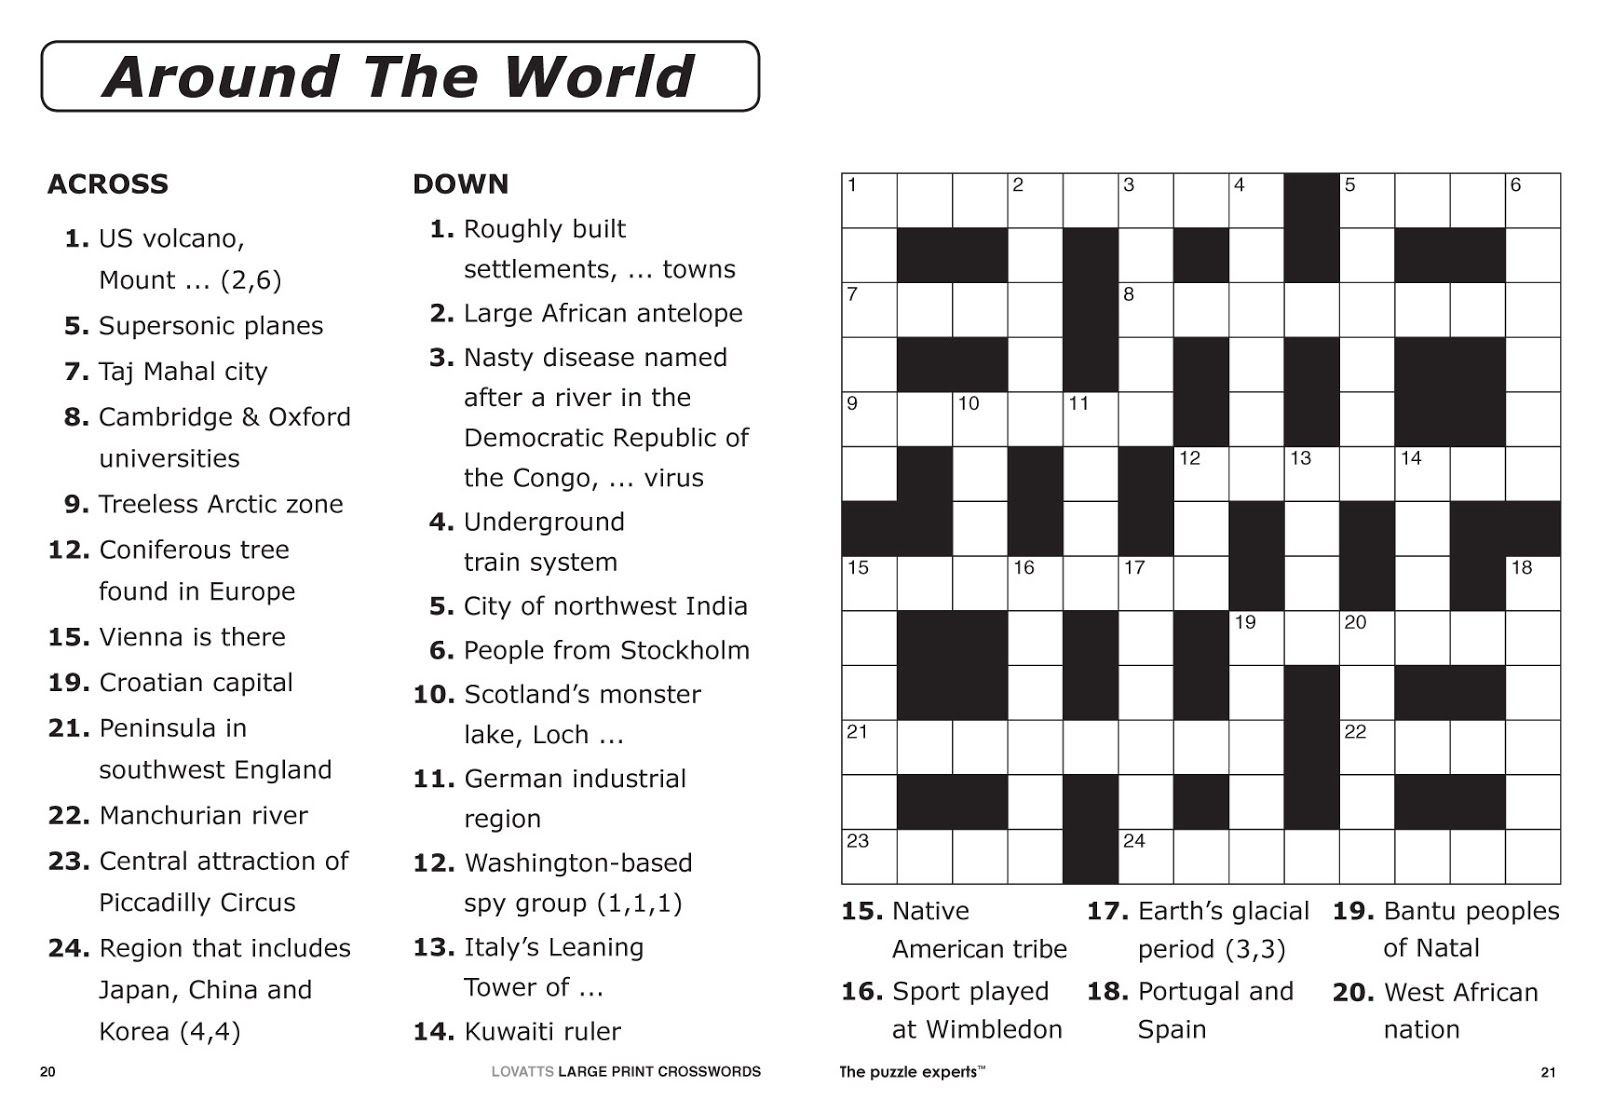 Free Printable Large Print Crossword Puzzles | M3U8 - Free Printable Puzzles For 9 Year Olds